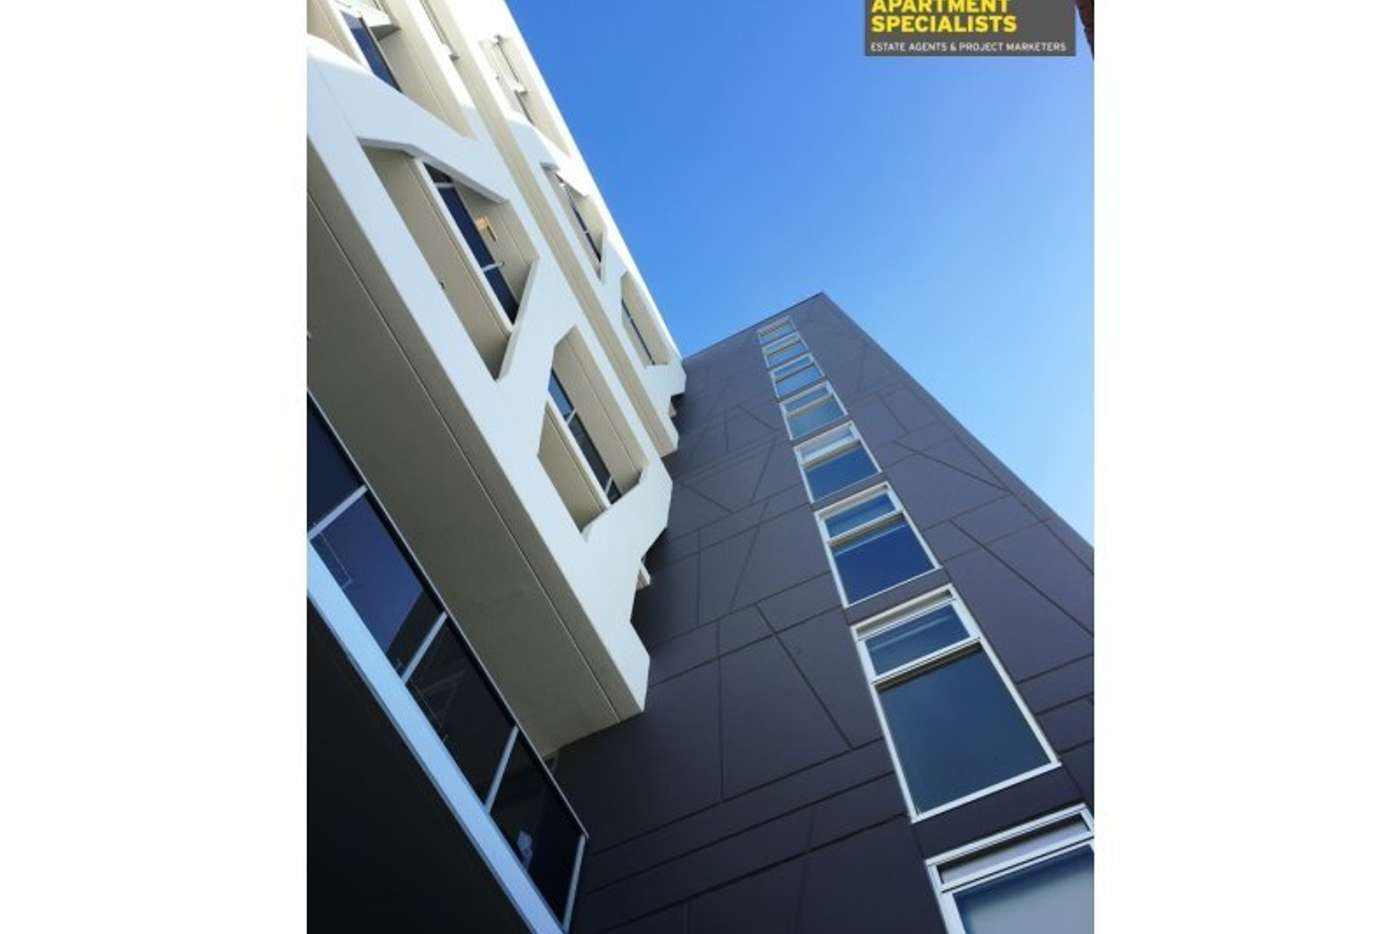 Main view of Homely apartment listing, 801/33 Racecourse Road, North Melbourne VIC 3051